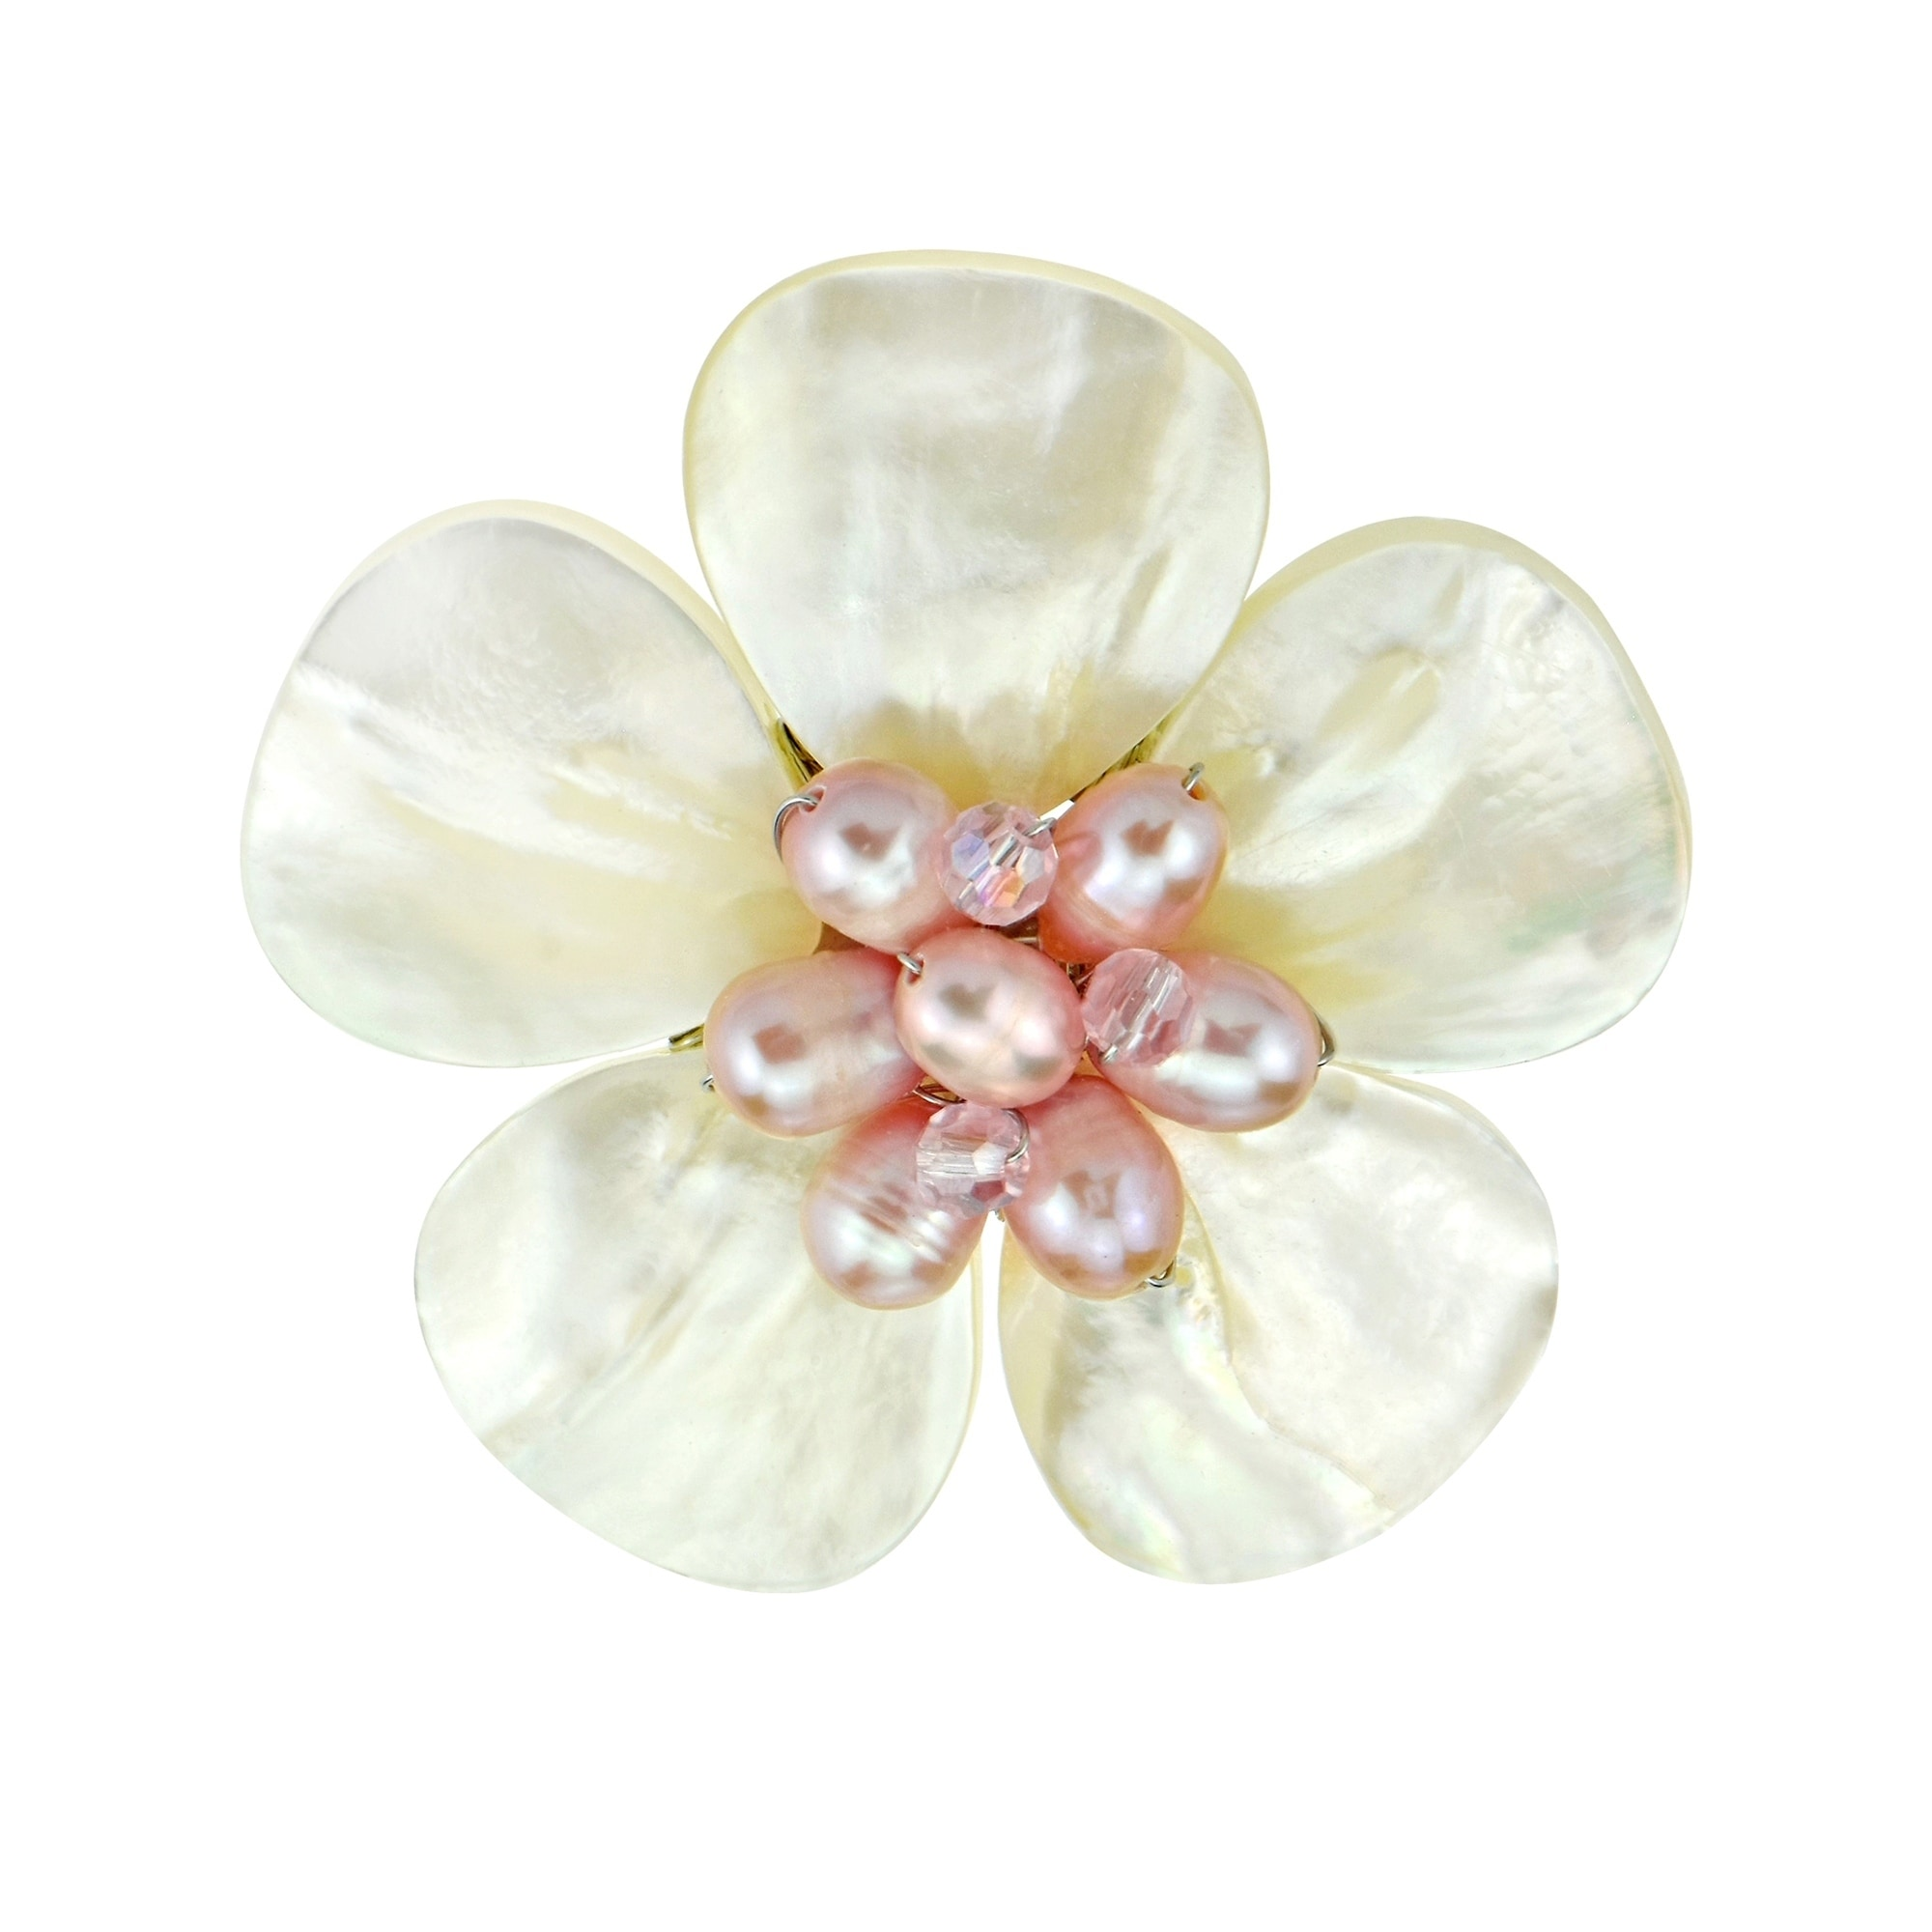 Aeravida Handmade White Floral Plumeria Mother of Pearl P...